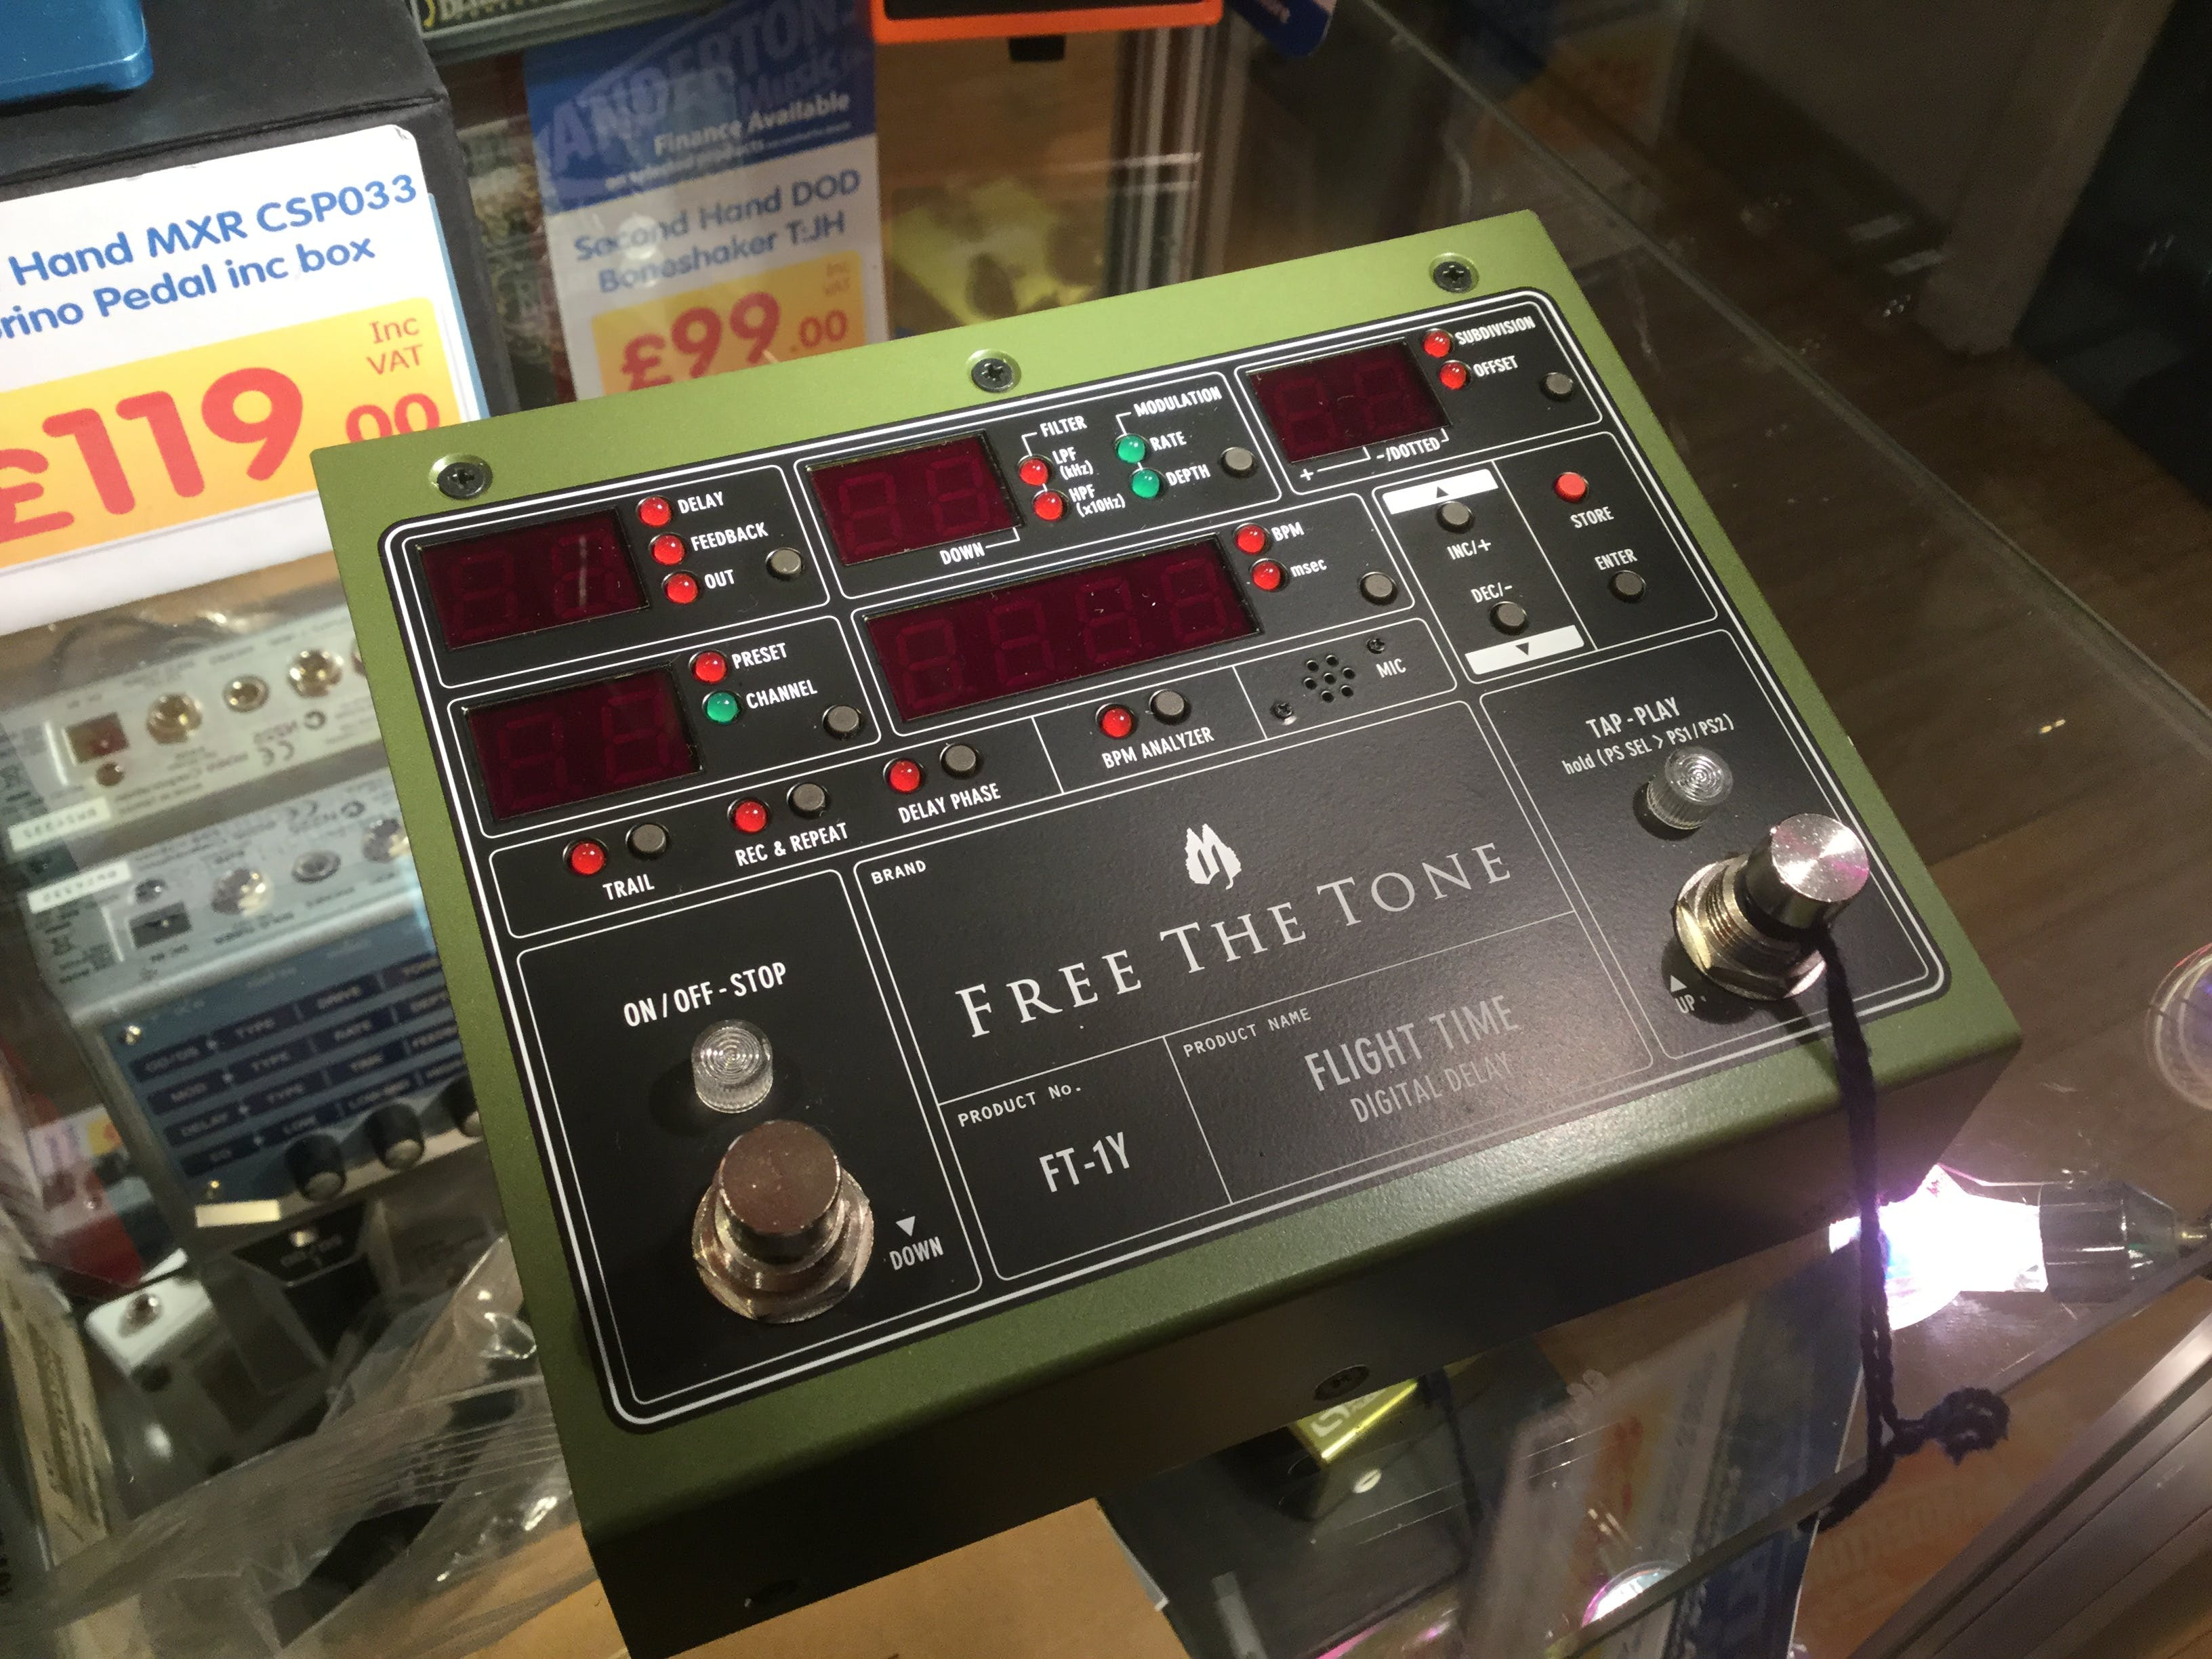 Second Hand Free The Tone Flightime Delay Pedal Inc Box And